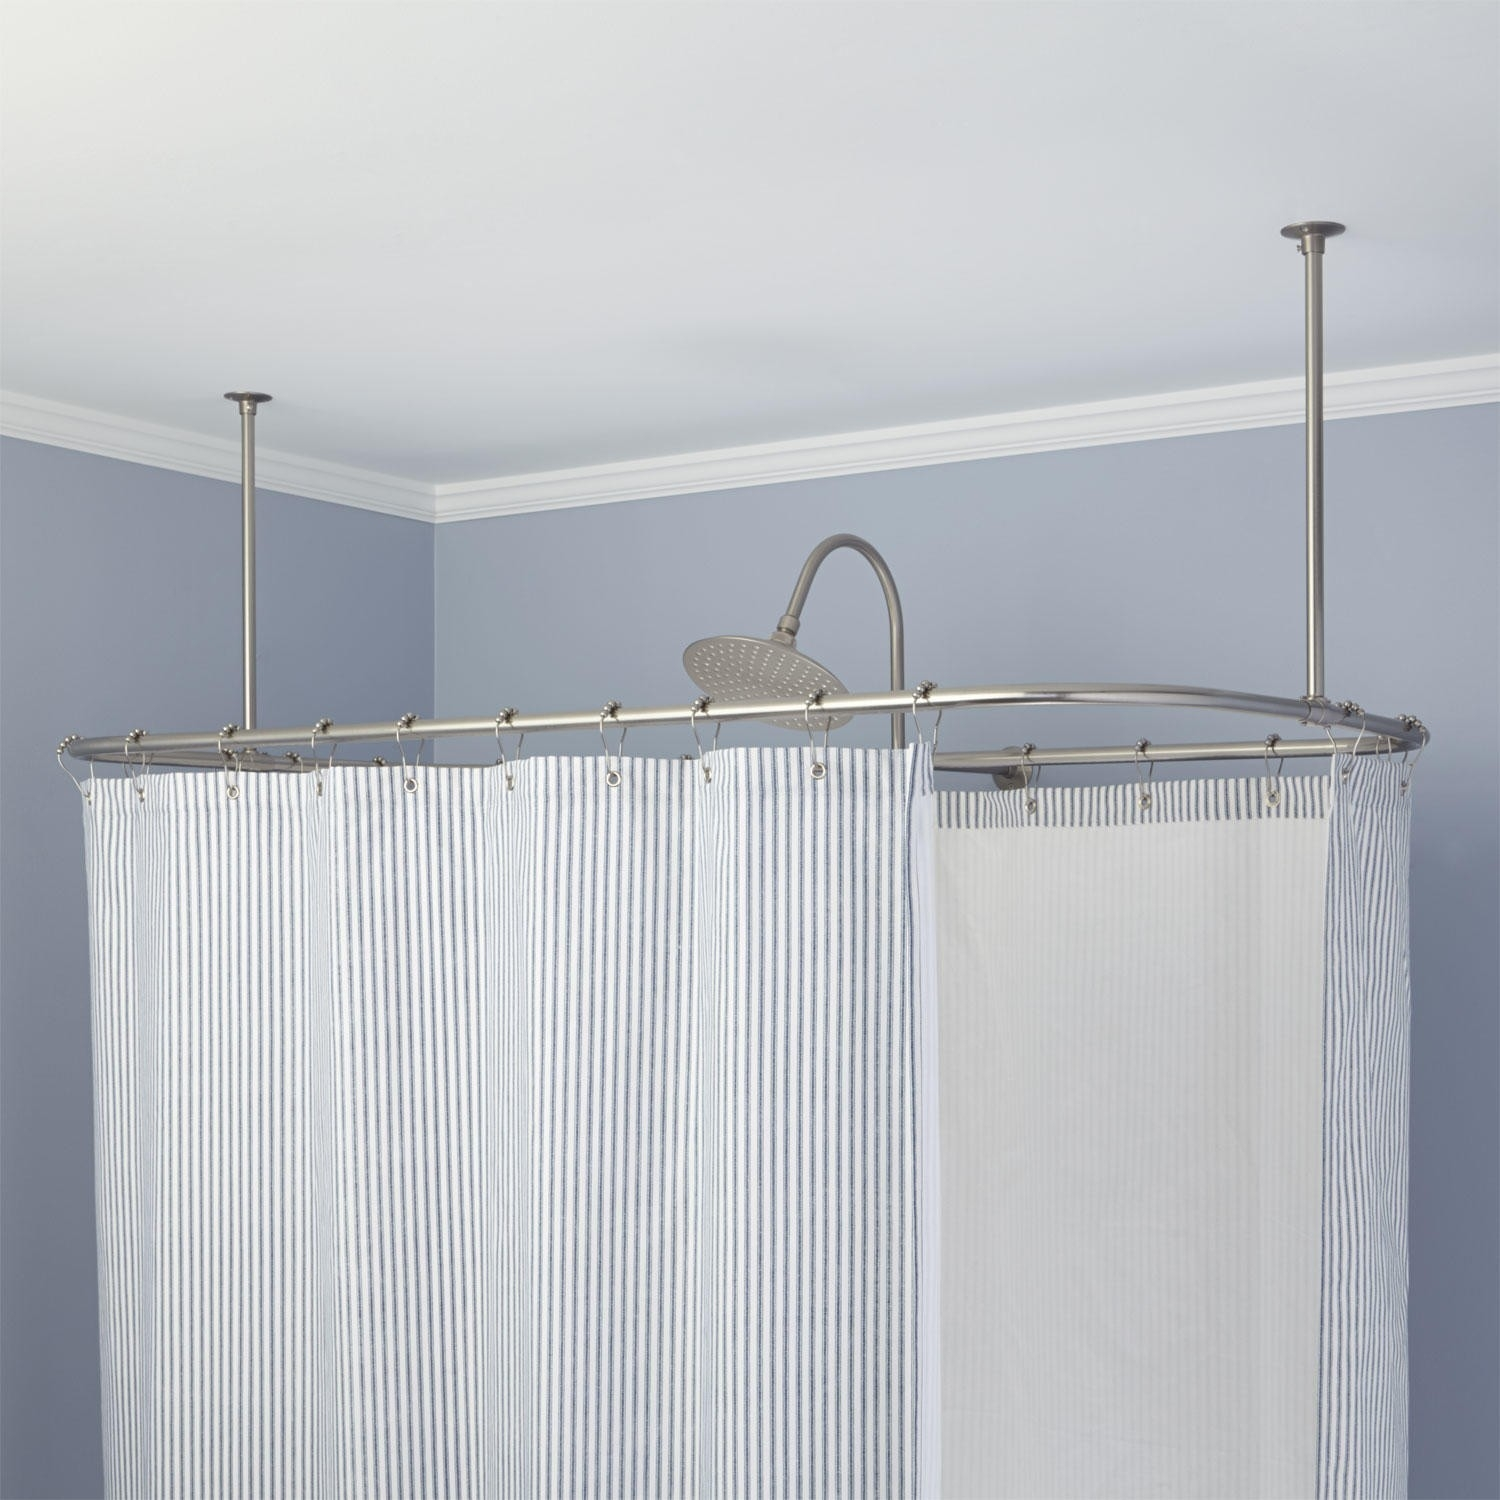 Side Wall Mount Curtain Rods Curtain Menzilperde Within Shower Curtain Wall Mounts (Image 16 of 25)